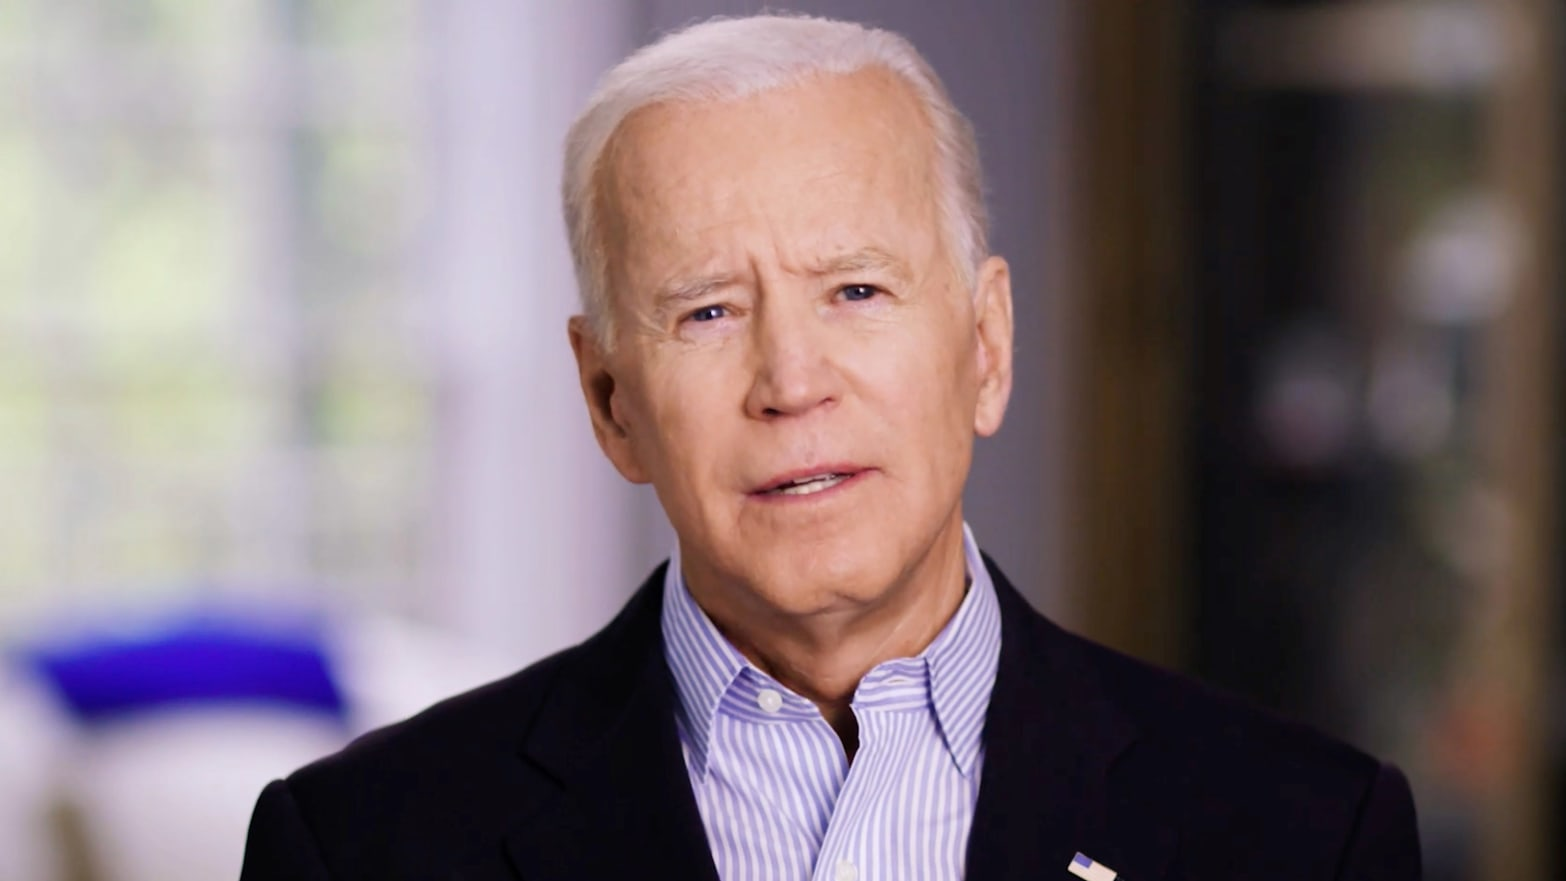 Joe Biden Kicks Off 2020 Campaign With Brutal Attack on Trump